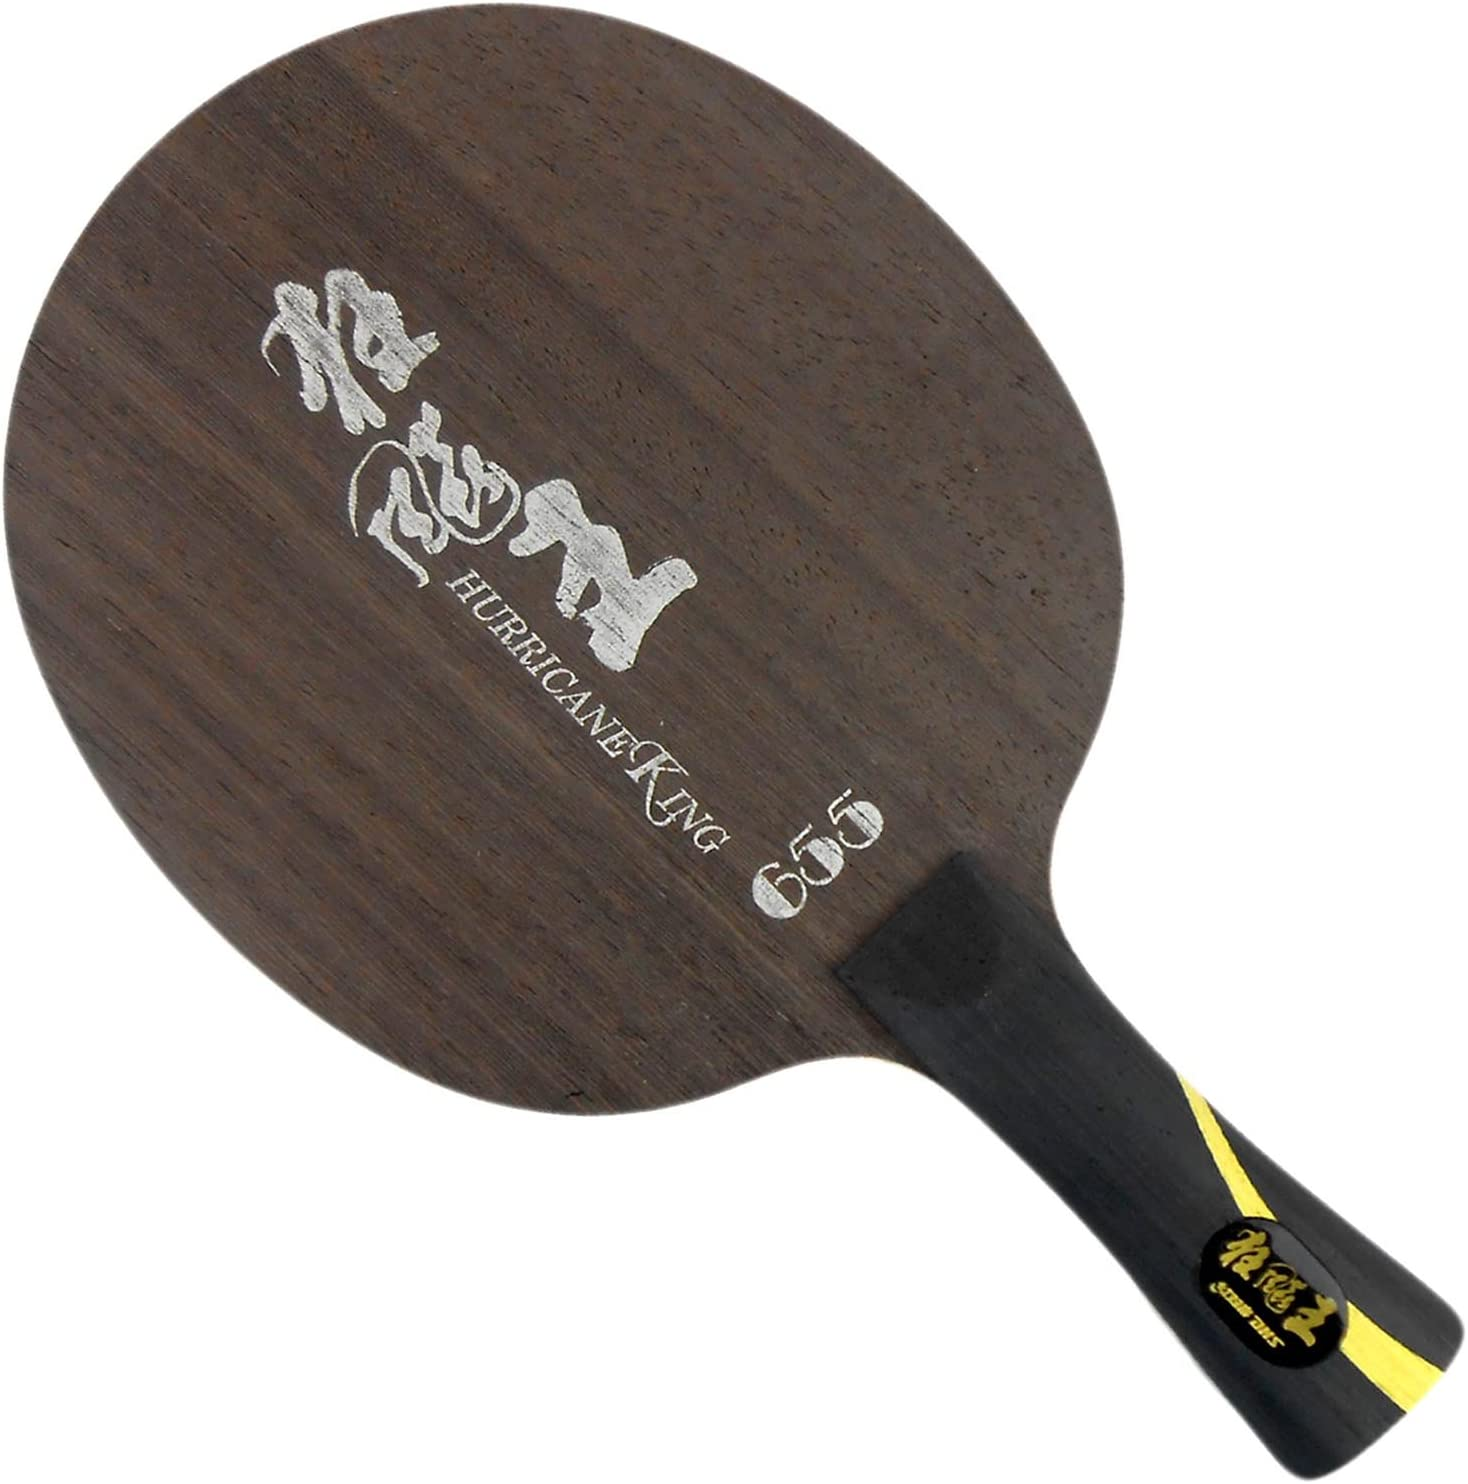 DHS Hurricane King 655 Table Tennis Blade for Ping Pong Racket, Long(shakehand)-FL